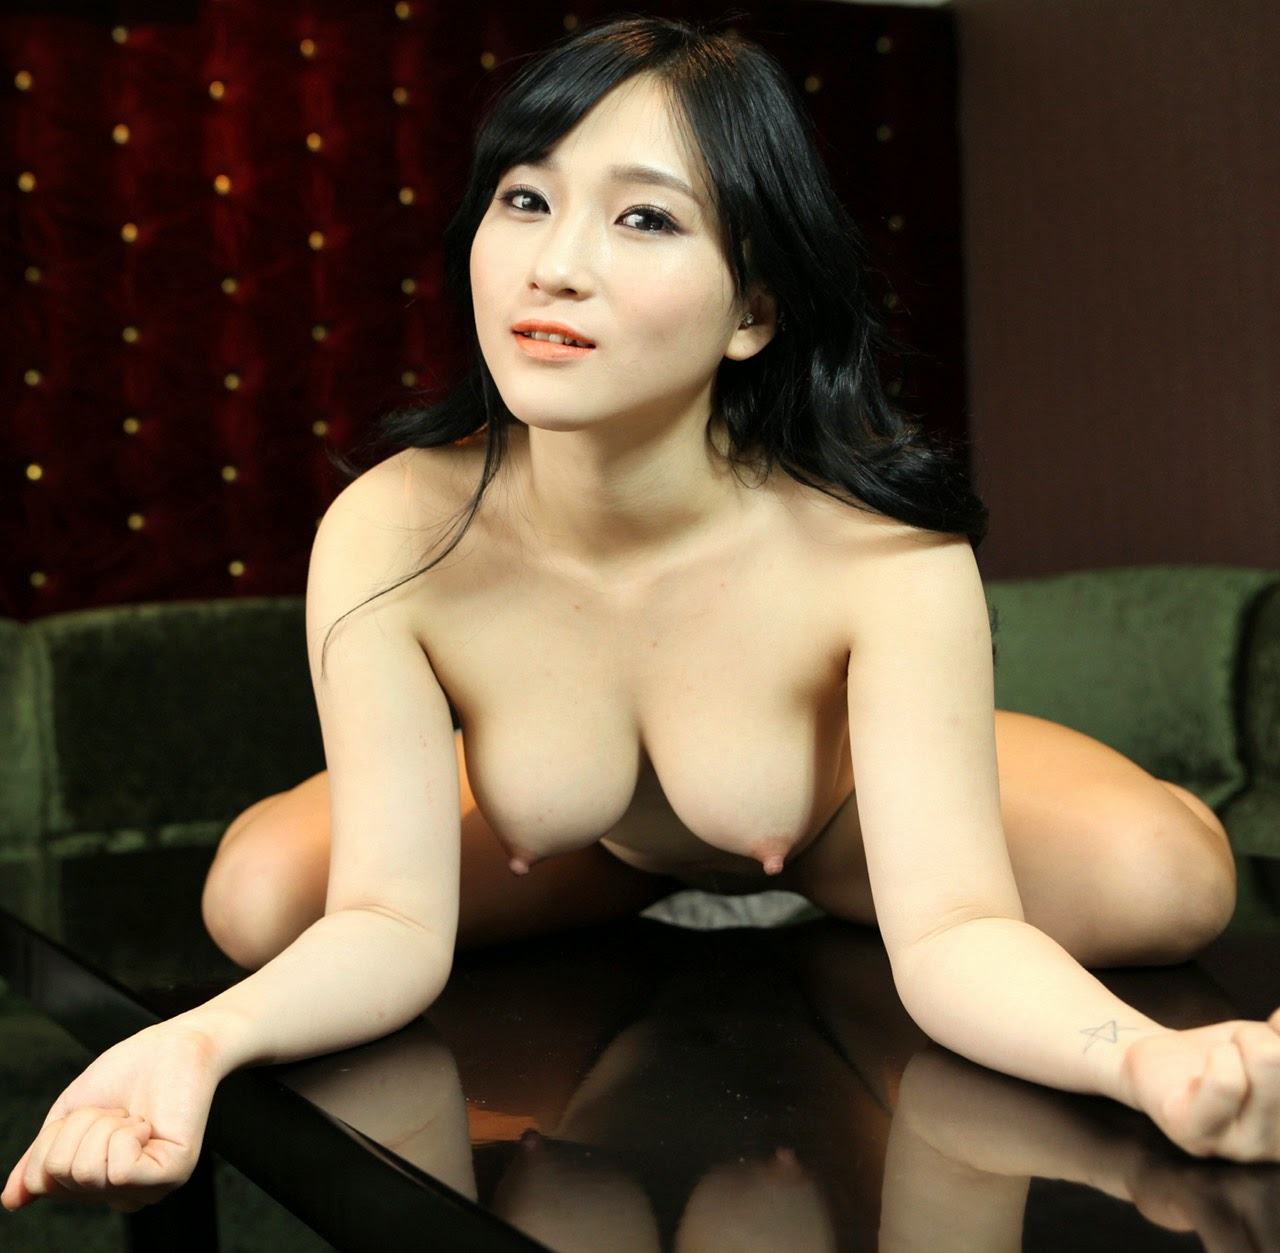 Hot model nude korean girls